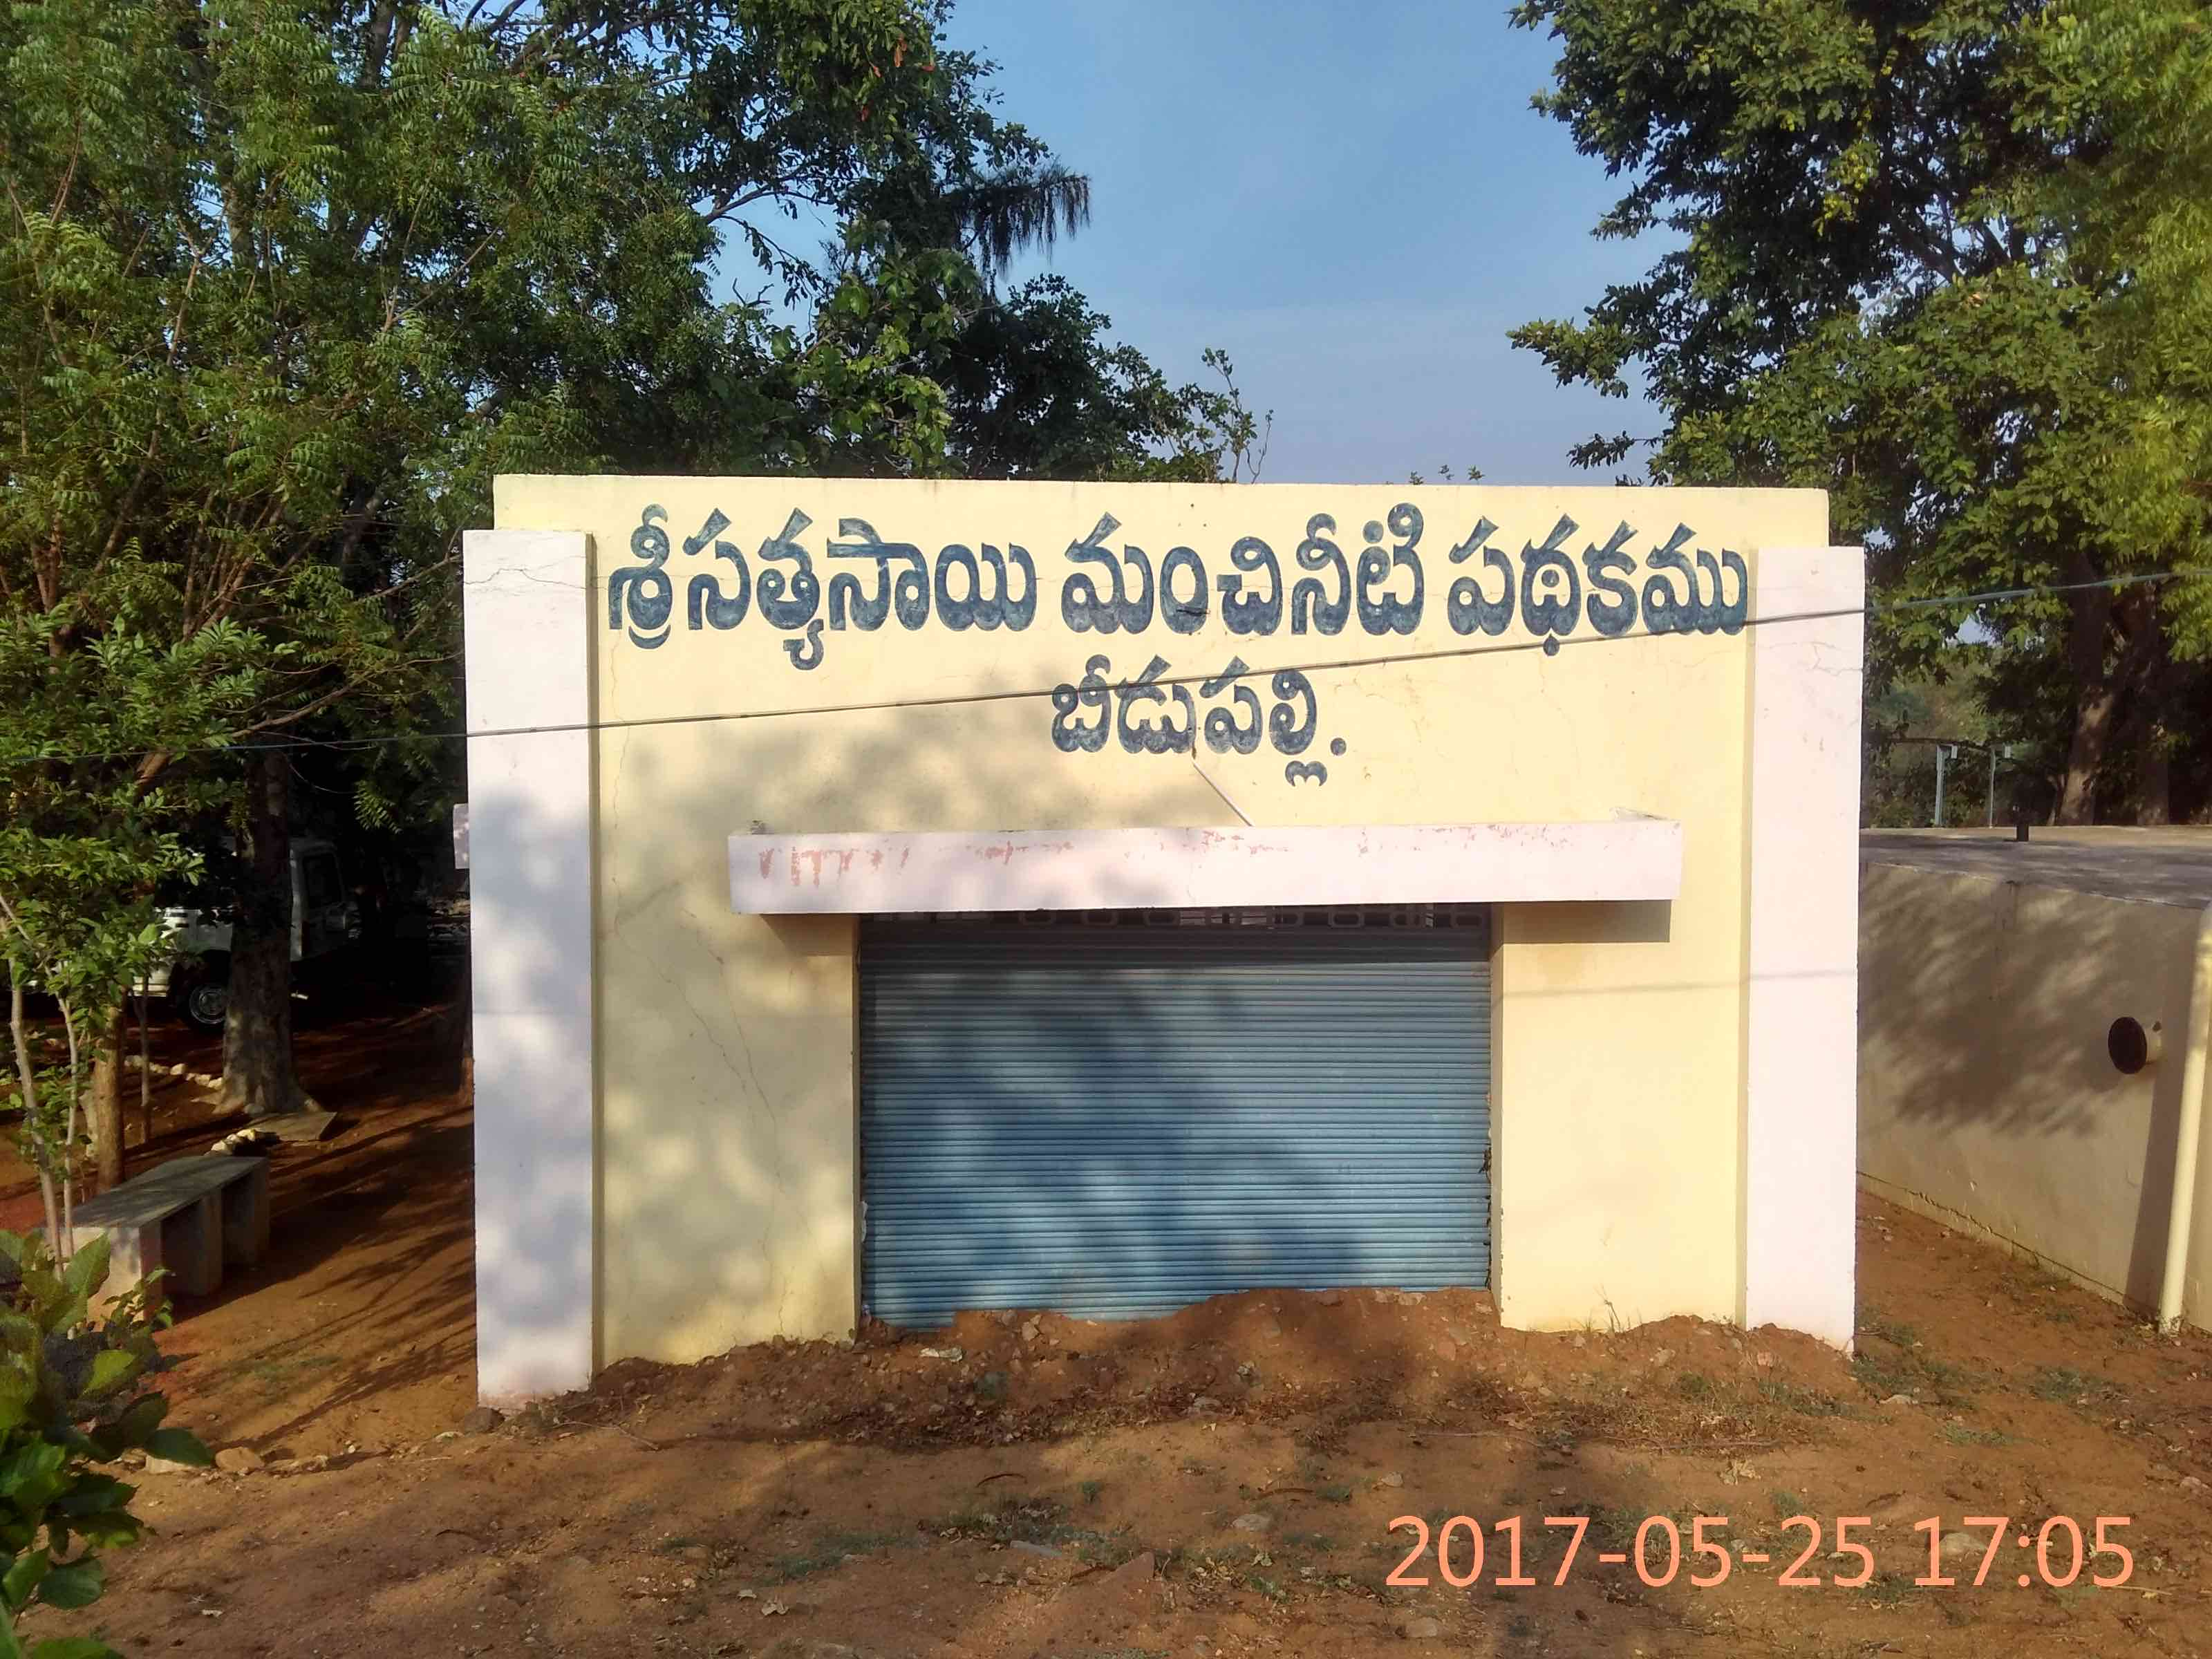 A drinking water pumping house maintained by Sri Sathya Sai Charitable Trust, Puttaparthi. Credit: Rahul Maganti